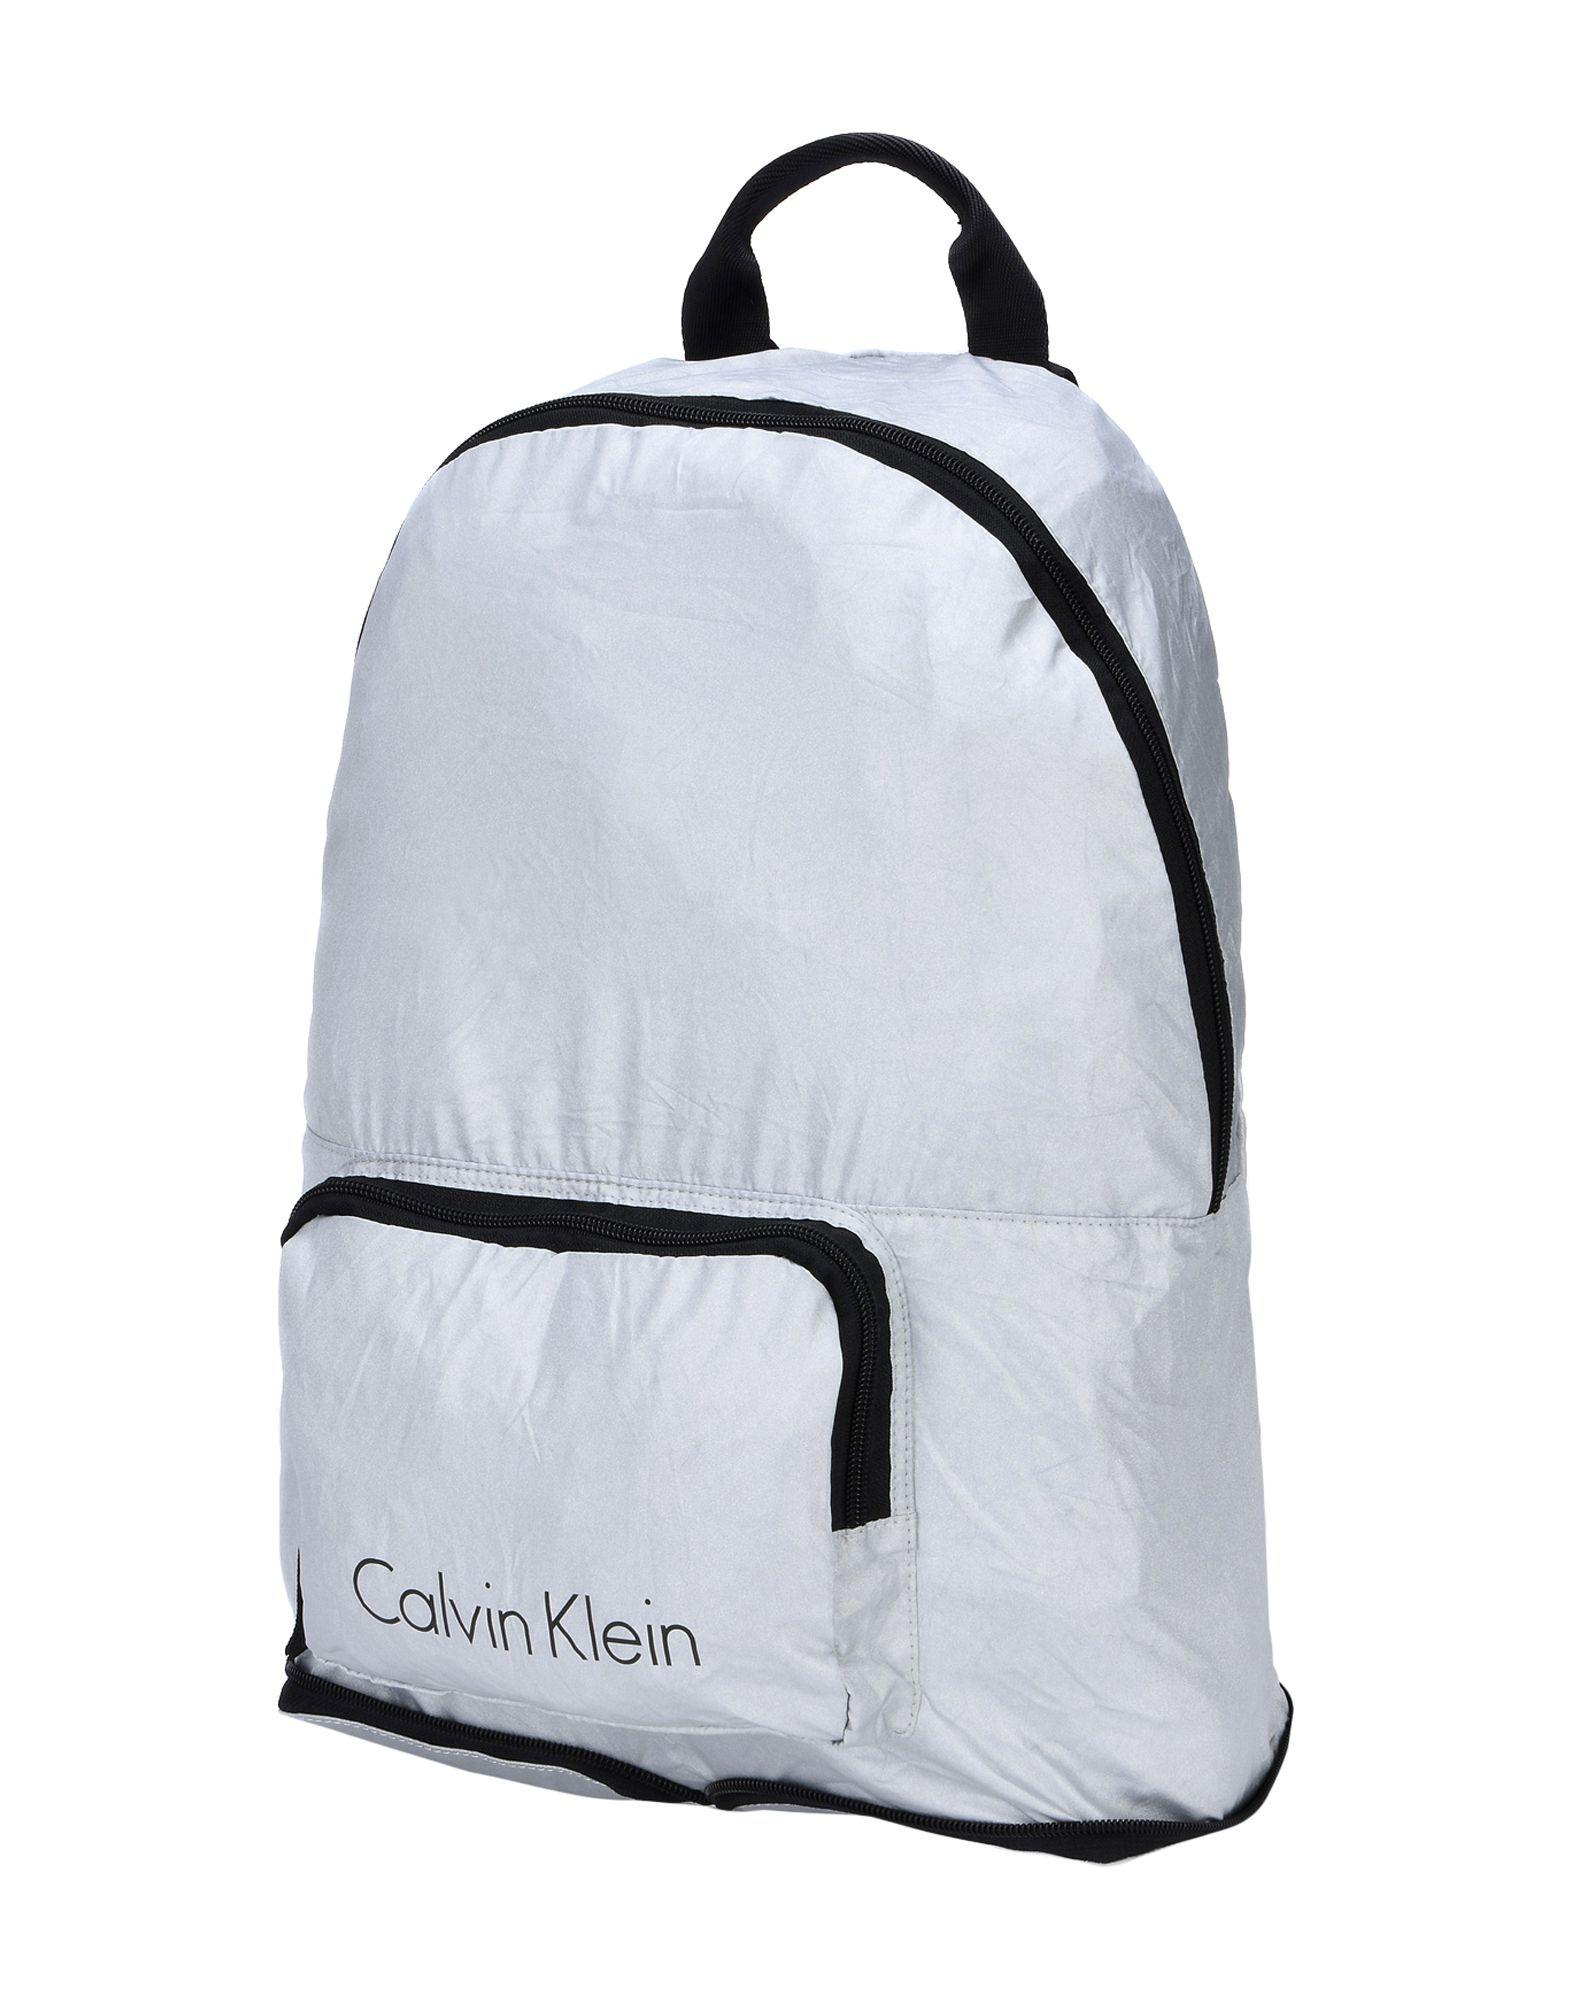 BAGS - Backpacks & Bum bags CALVIN KLEIN 205W39NYC